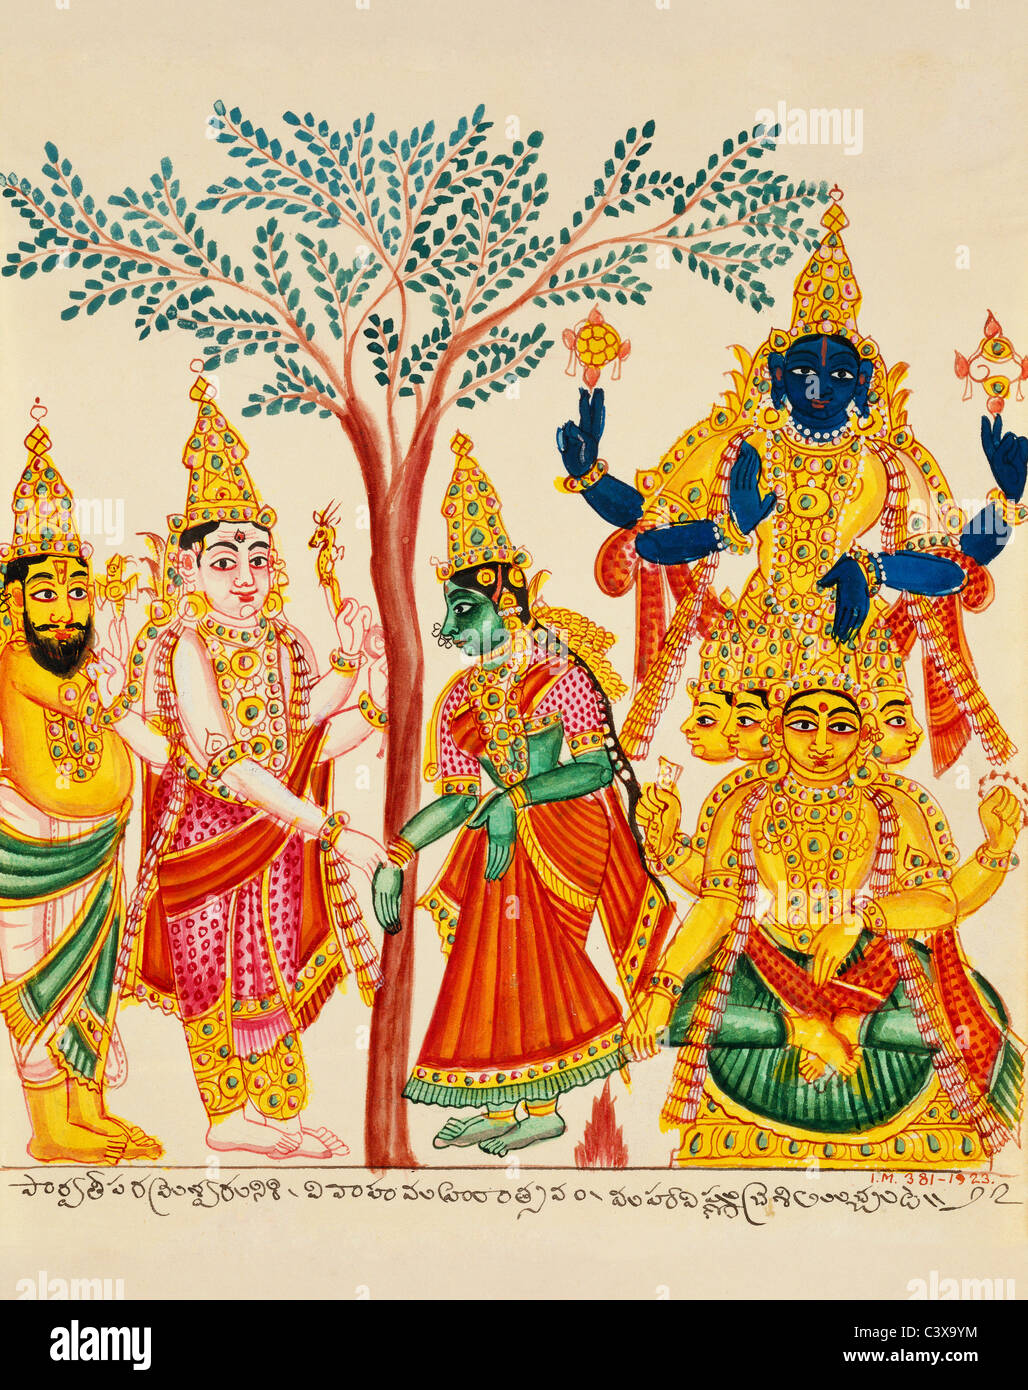 The marriage of Shiva and Parvati. Trichinopoly, India, early 19th century - Stock Image